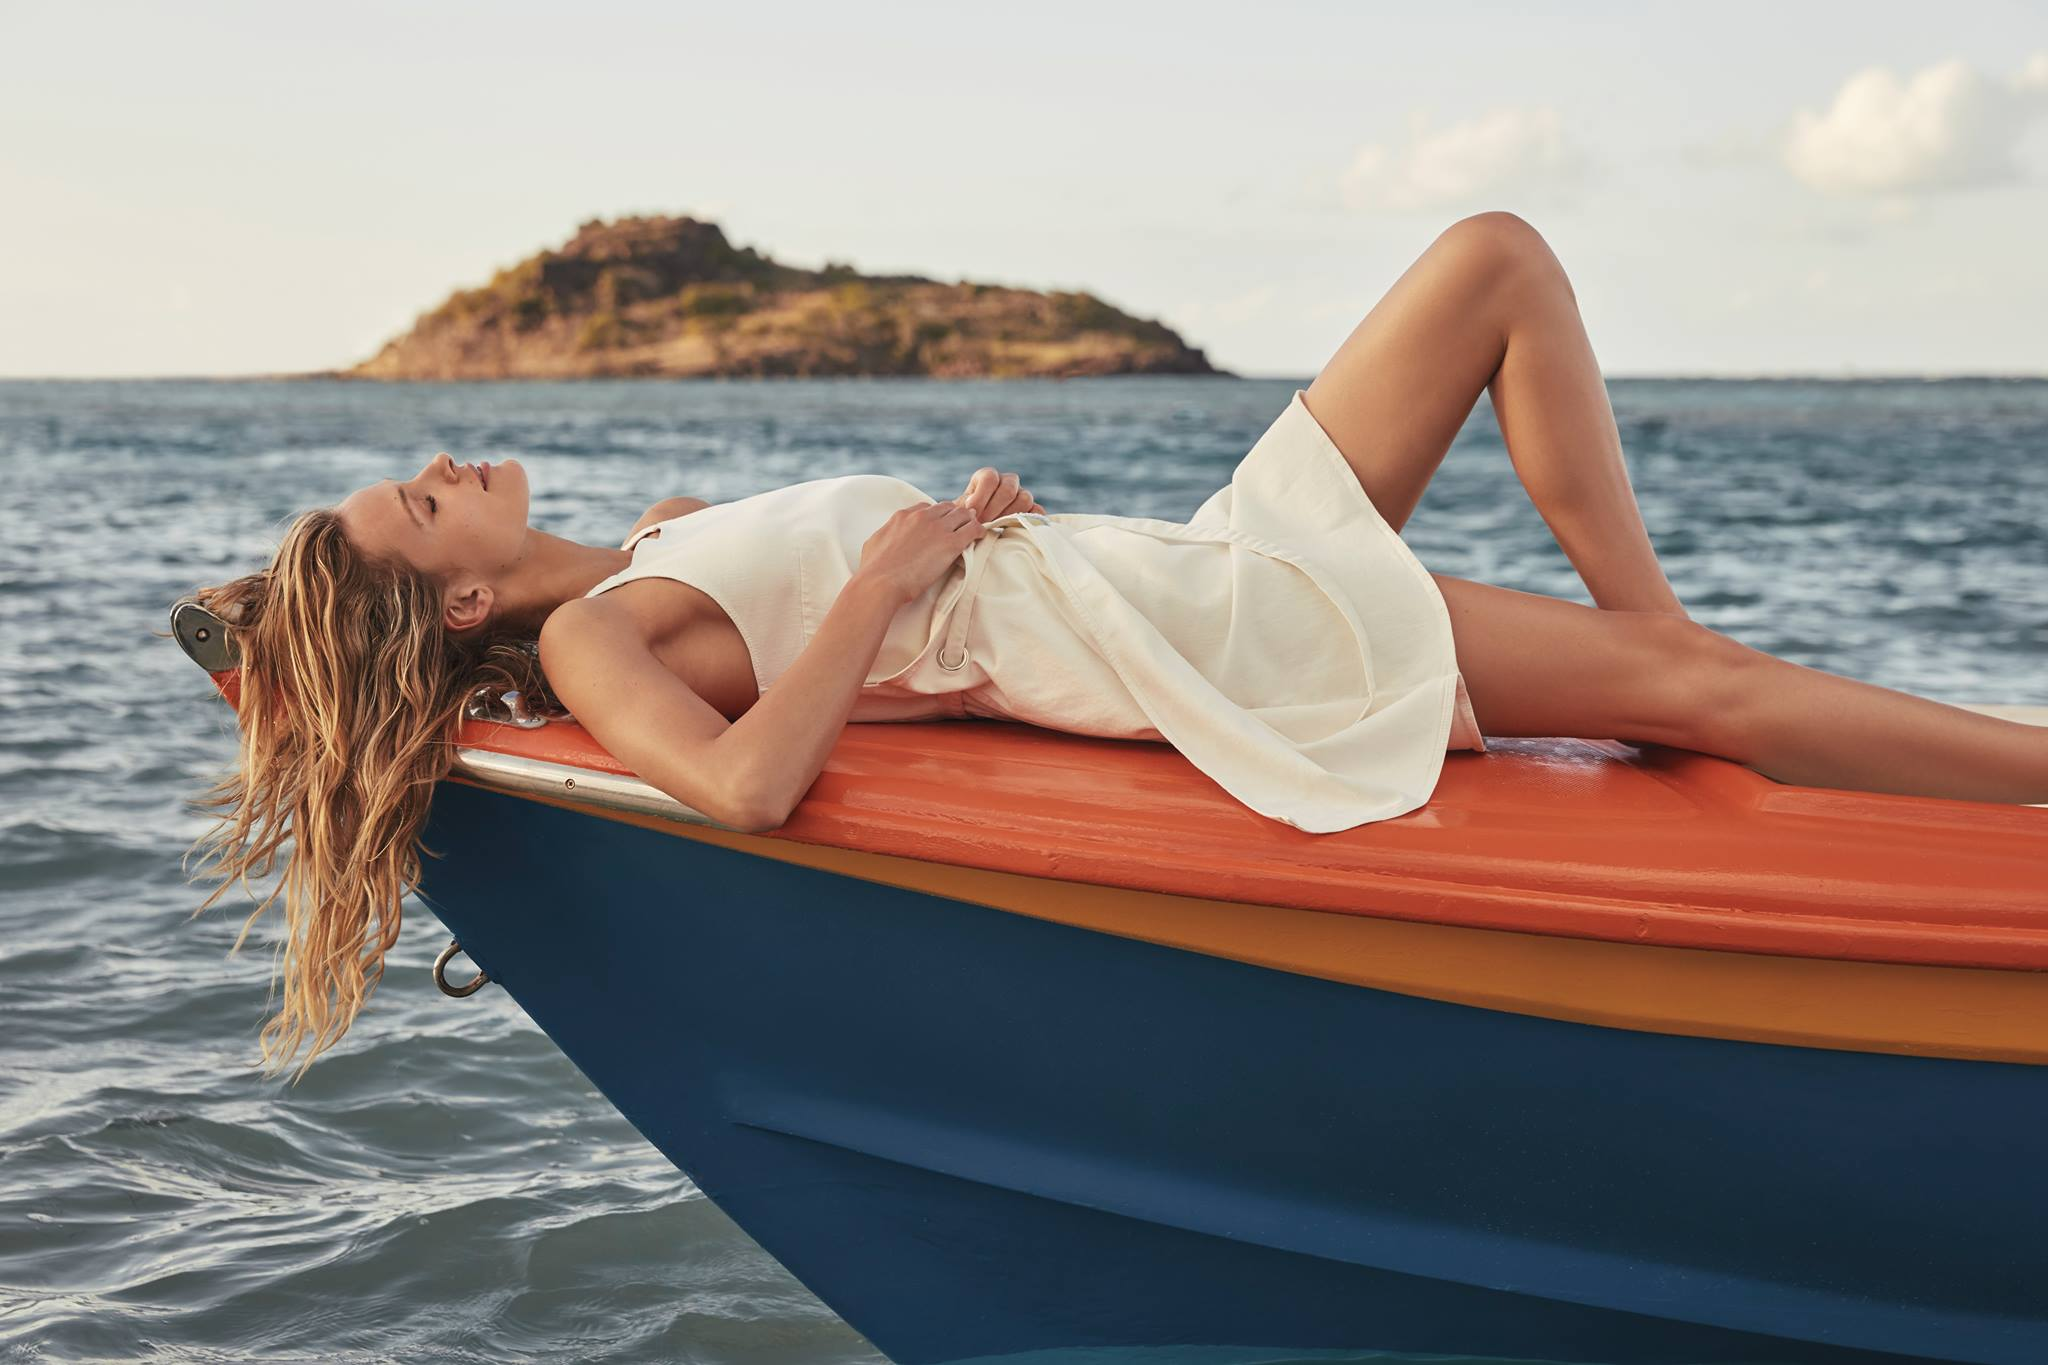 A woman in a white dress on a boat at sea.